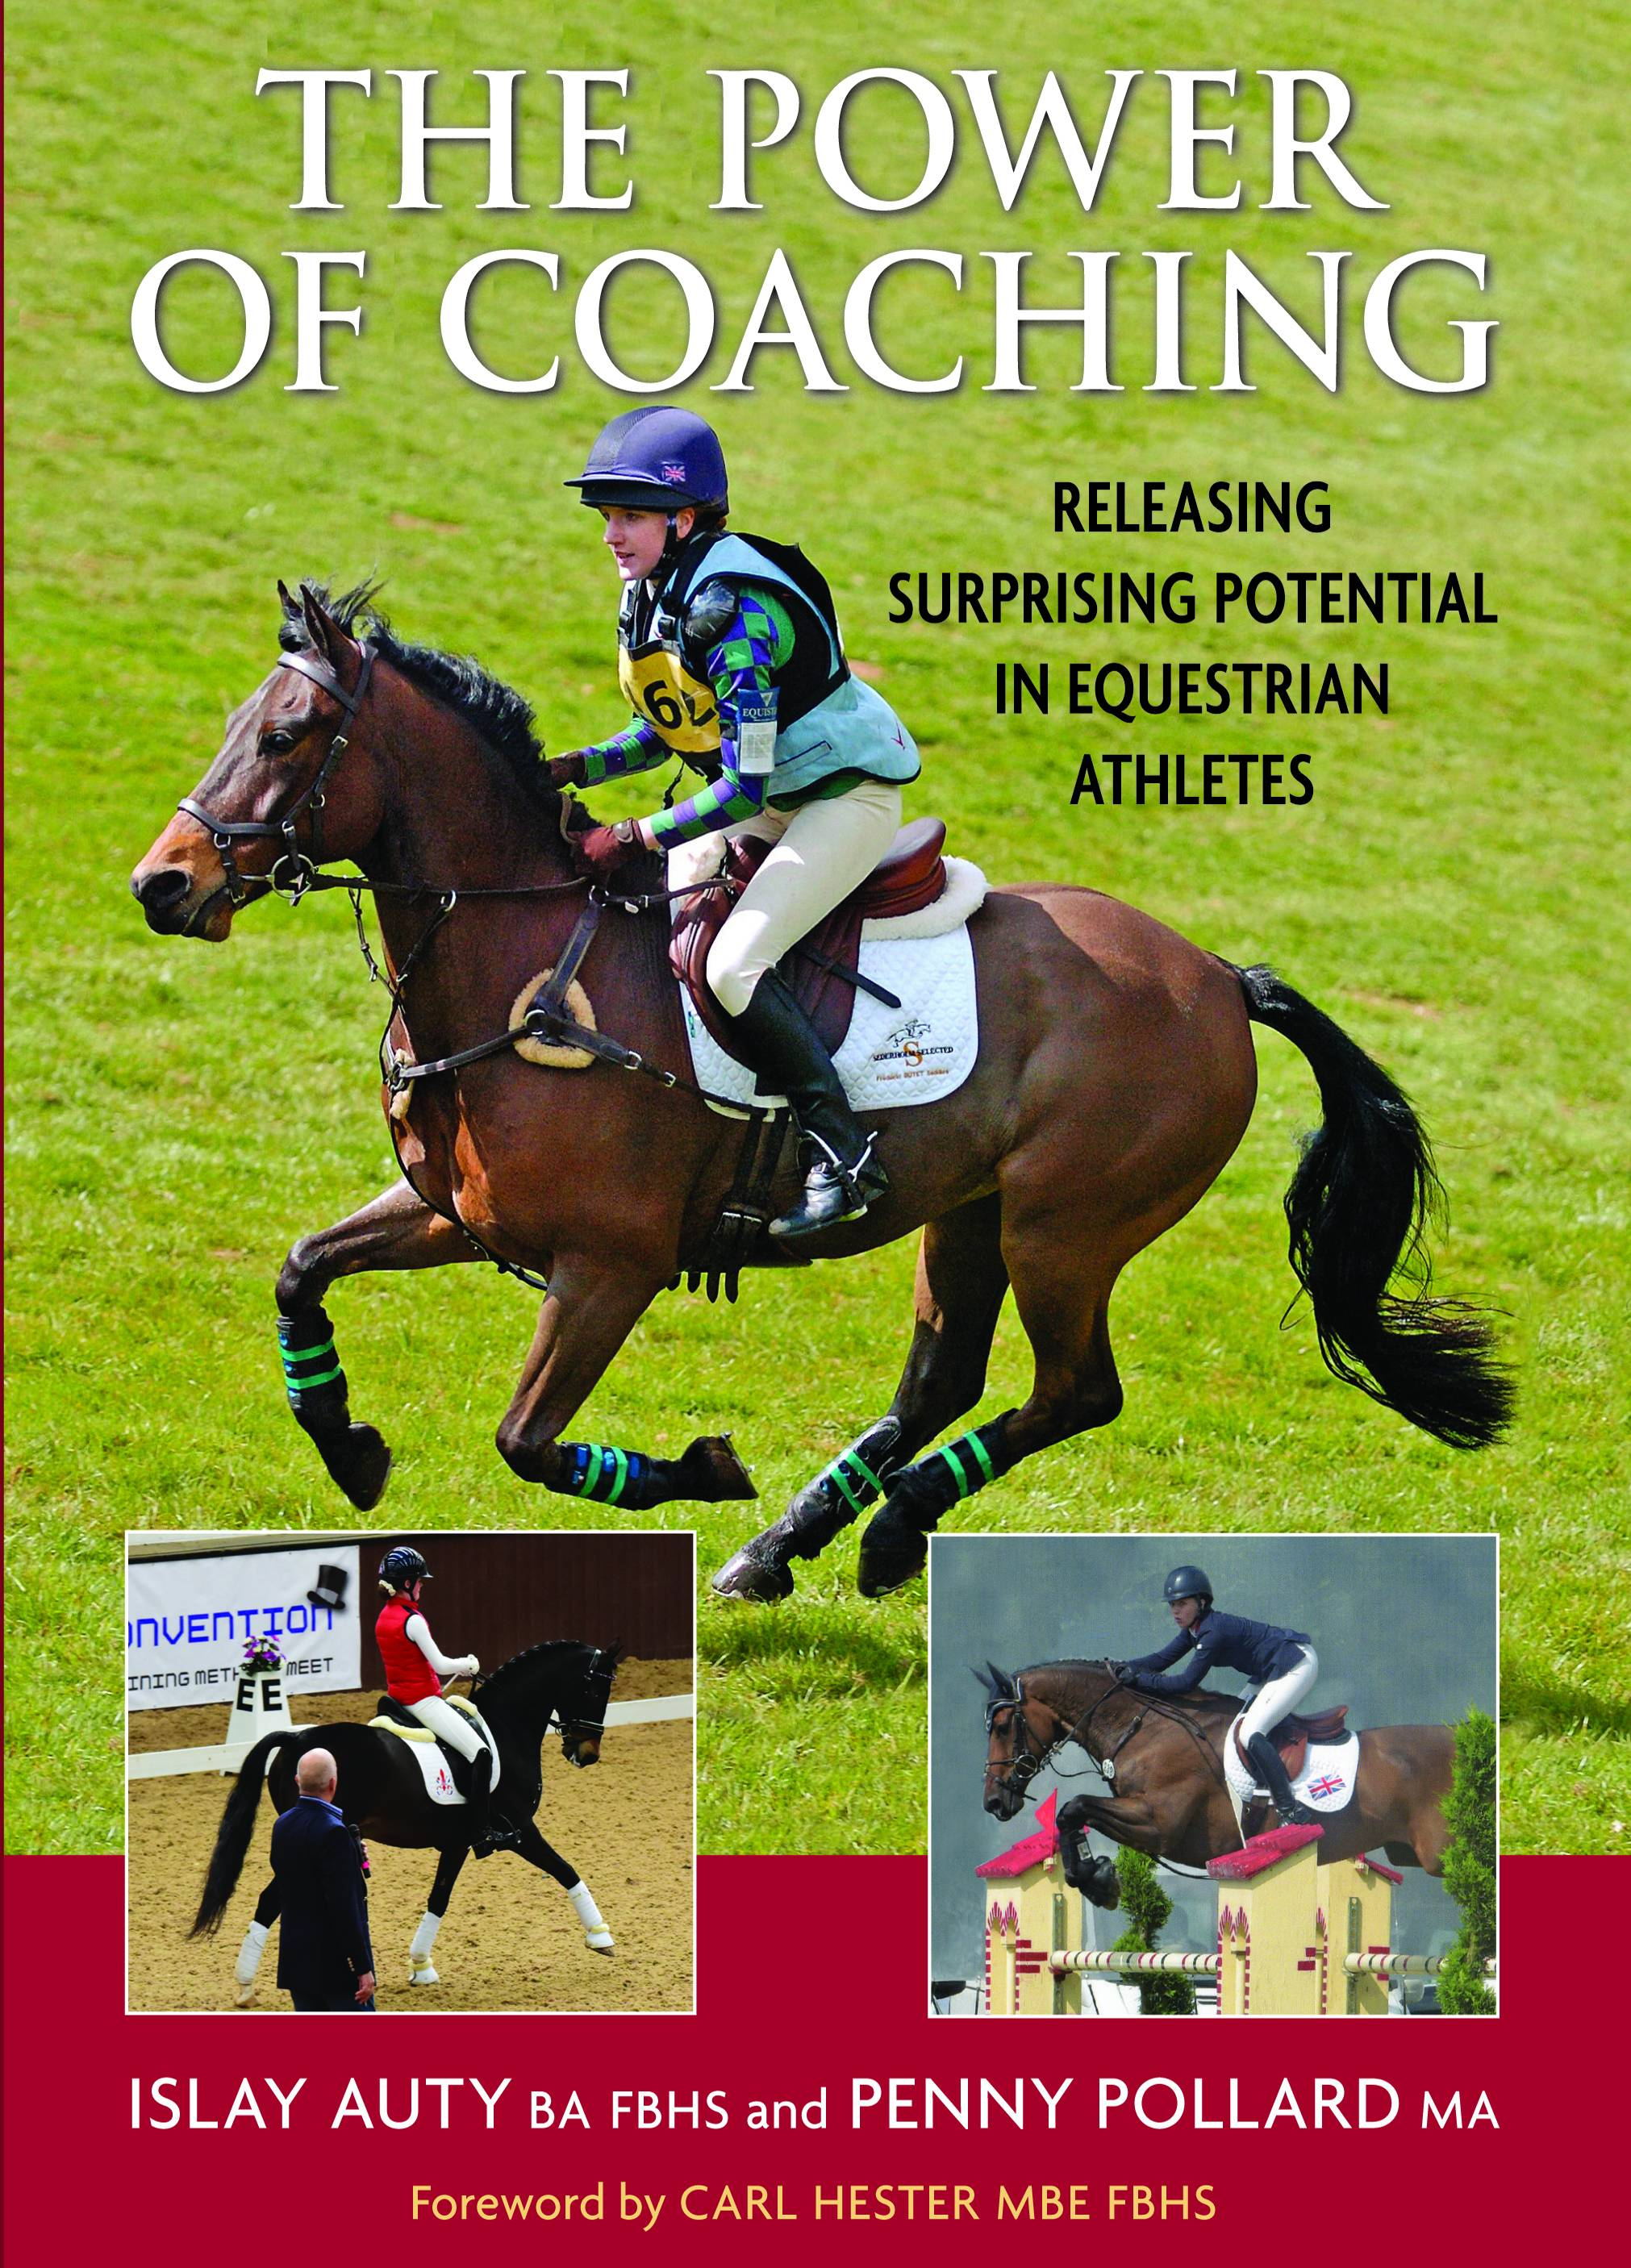 The Power Of Coaching: Releasing Surprising Potential In Equestrian Athletes